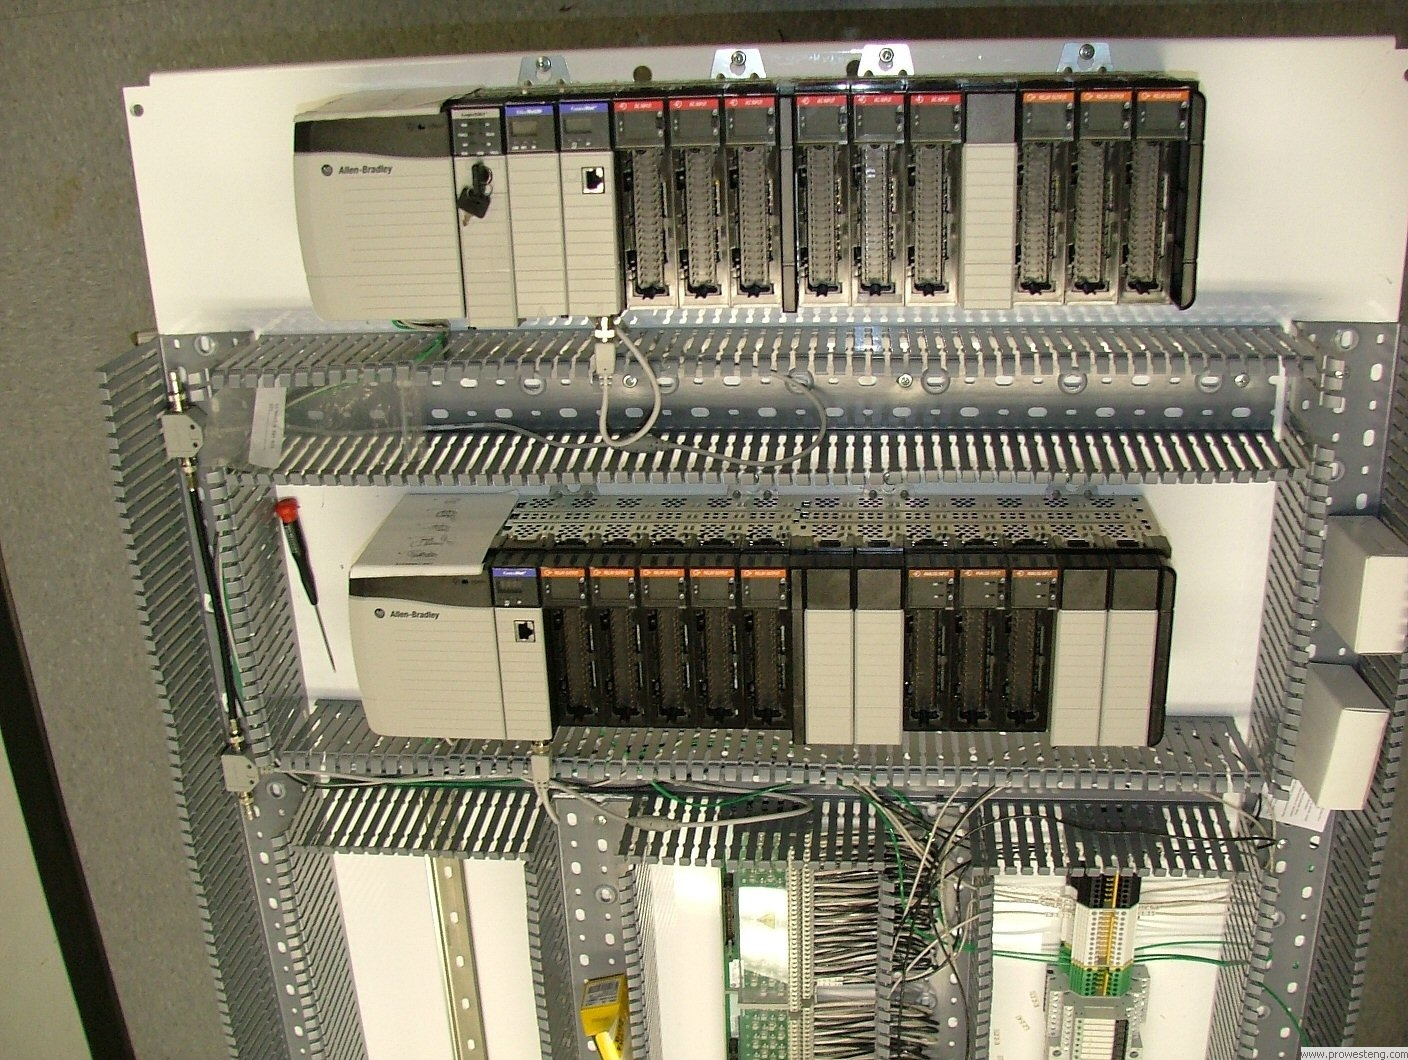 Allen Bradley ControlLogix PLC with wiring interface modules.